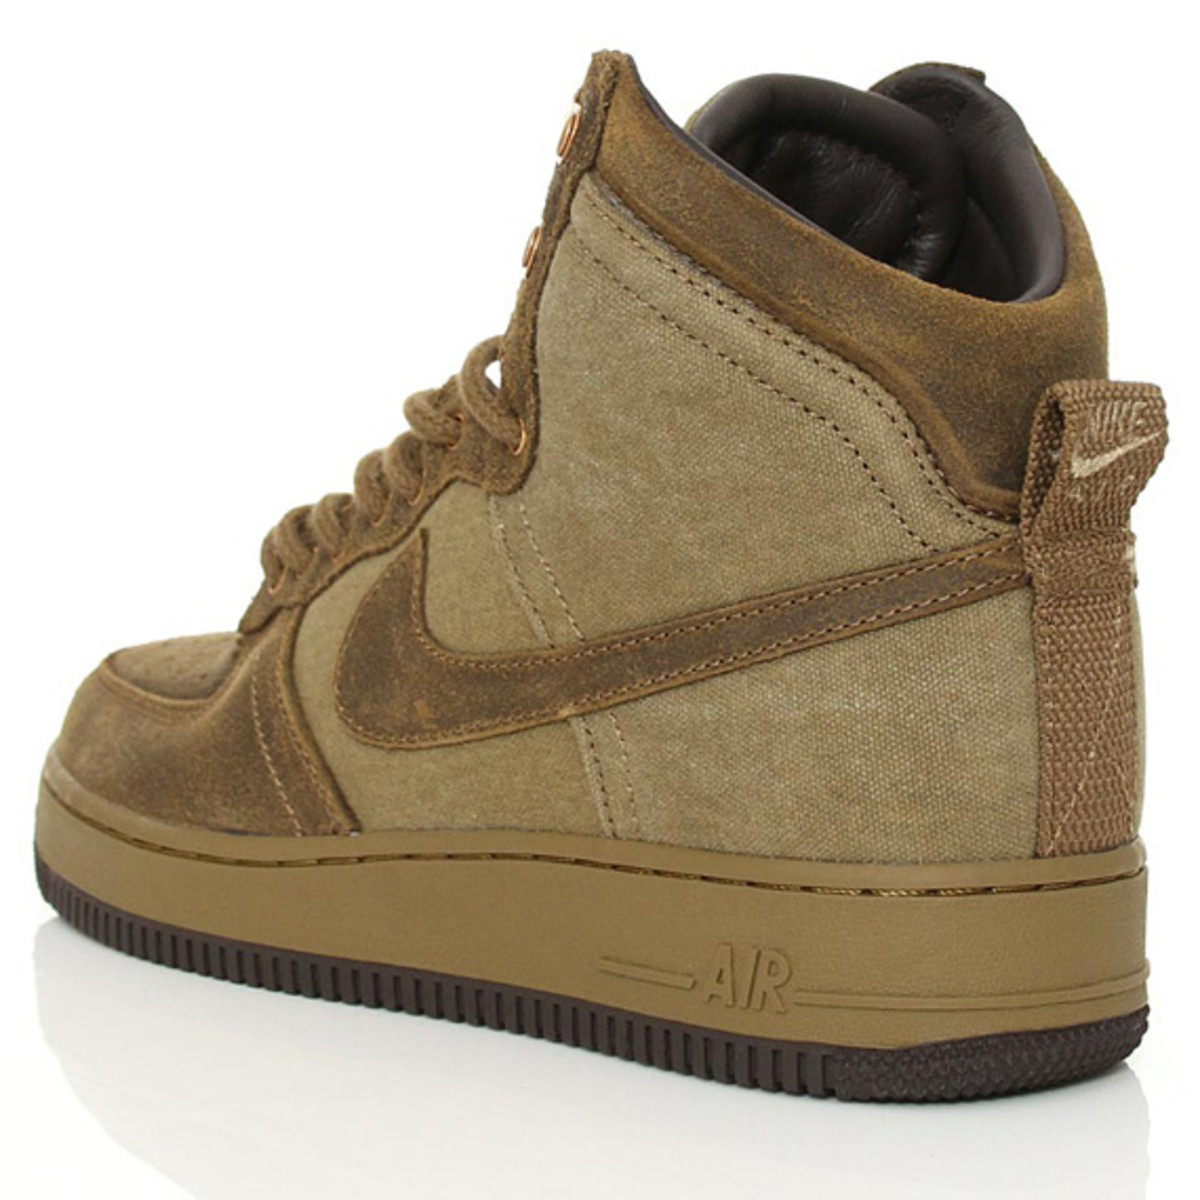 nike-air-force-1-hi-dcn-military-boot-raw-umber-07